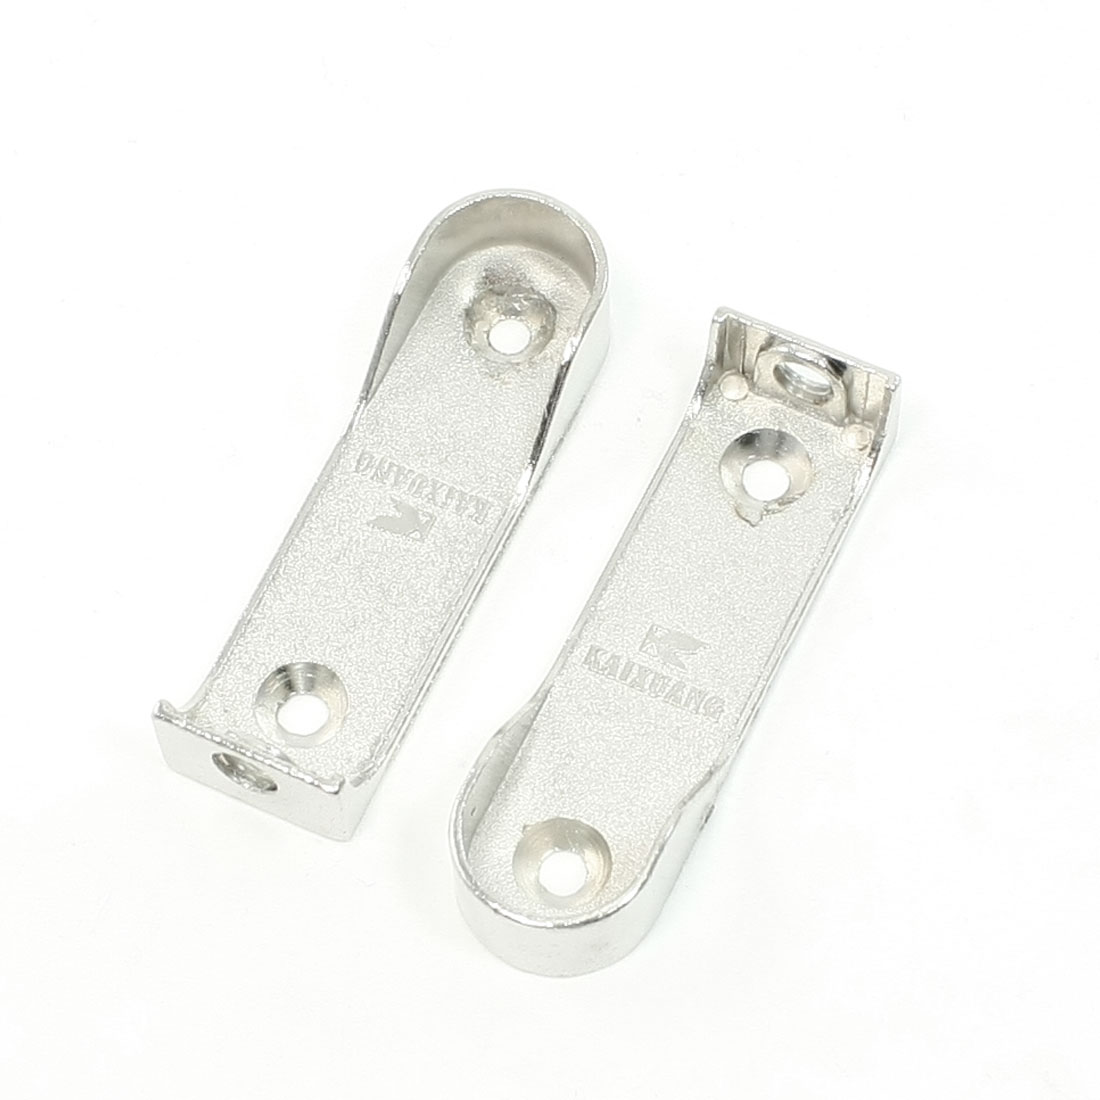 2 Pcs Silver Tone Metal Garment Pipe Lever Clothes Bracket